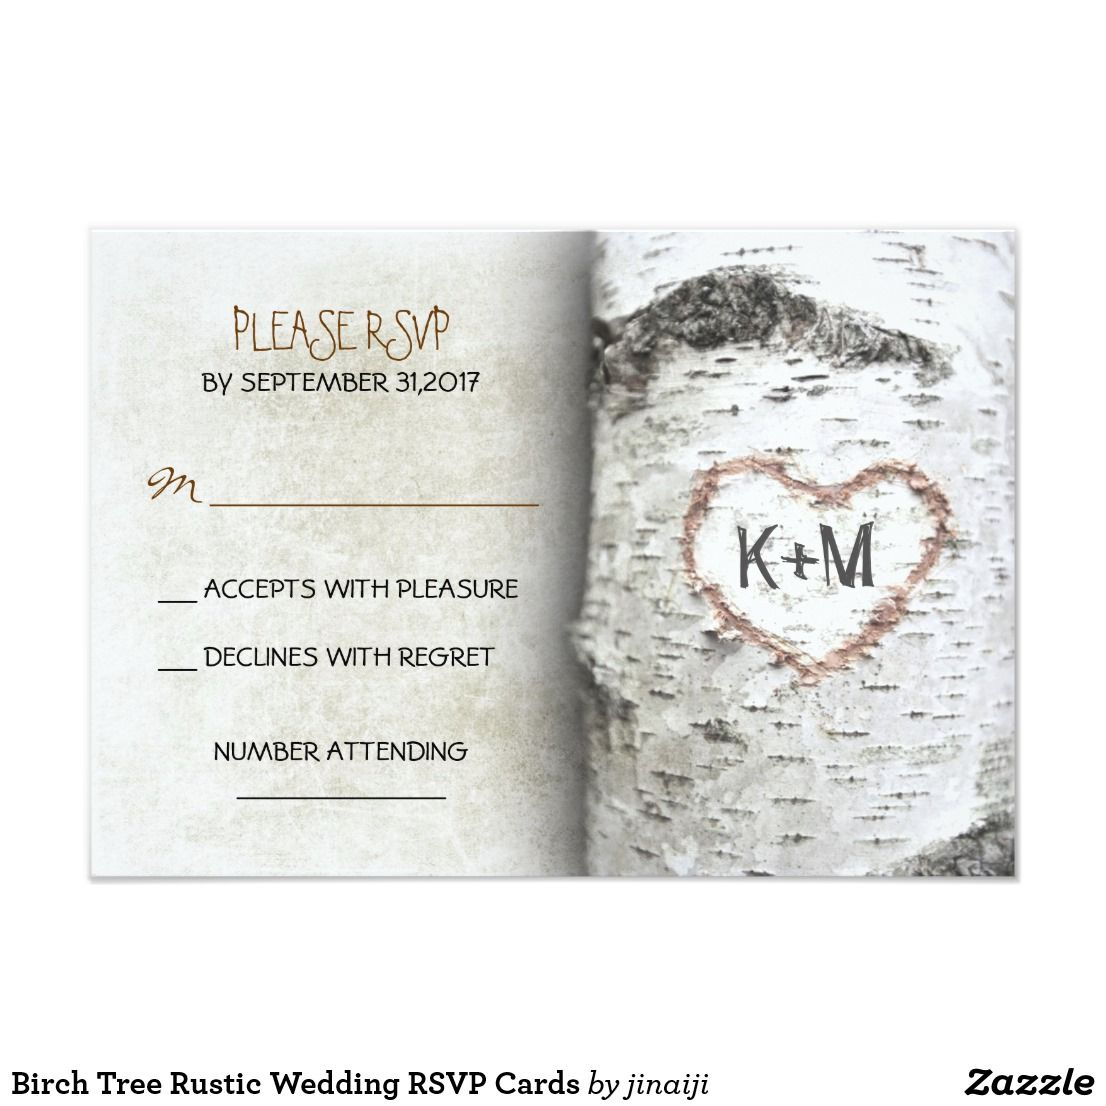 Birch Tree Rustic Wedding Rsvp Cards Best Invitations Pinterest